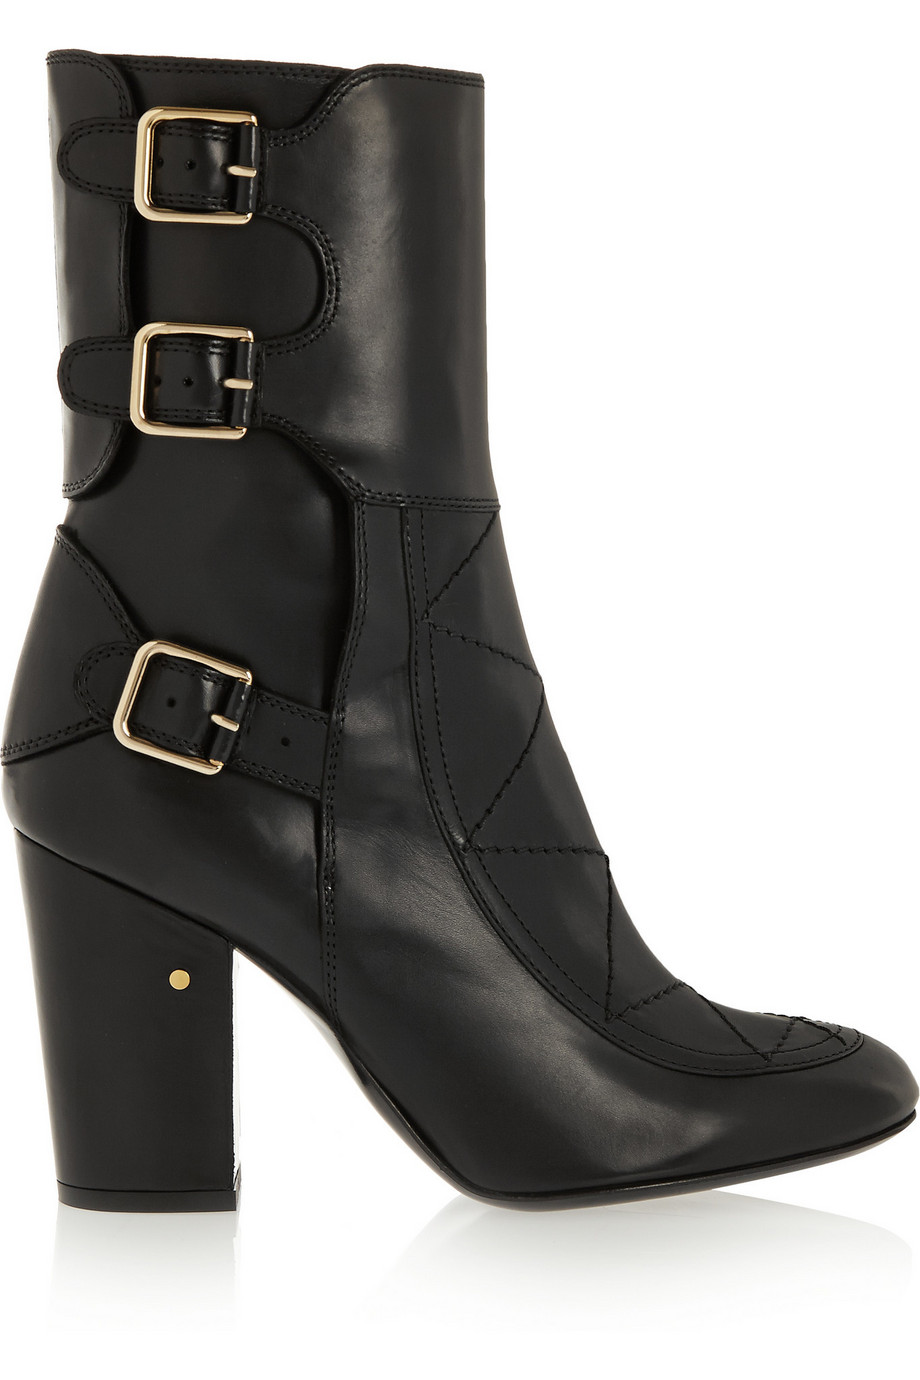 Laurence Dacade Merli Buckled Leather Boots, Black, Women's US Size: 8.5, Size: 39